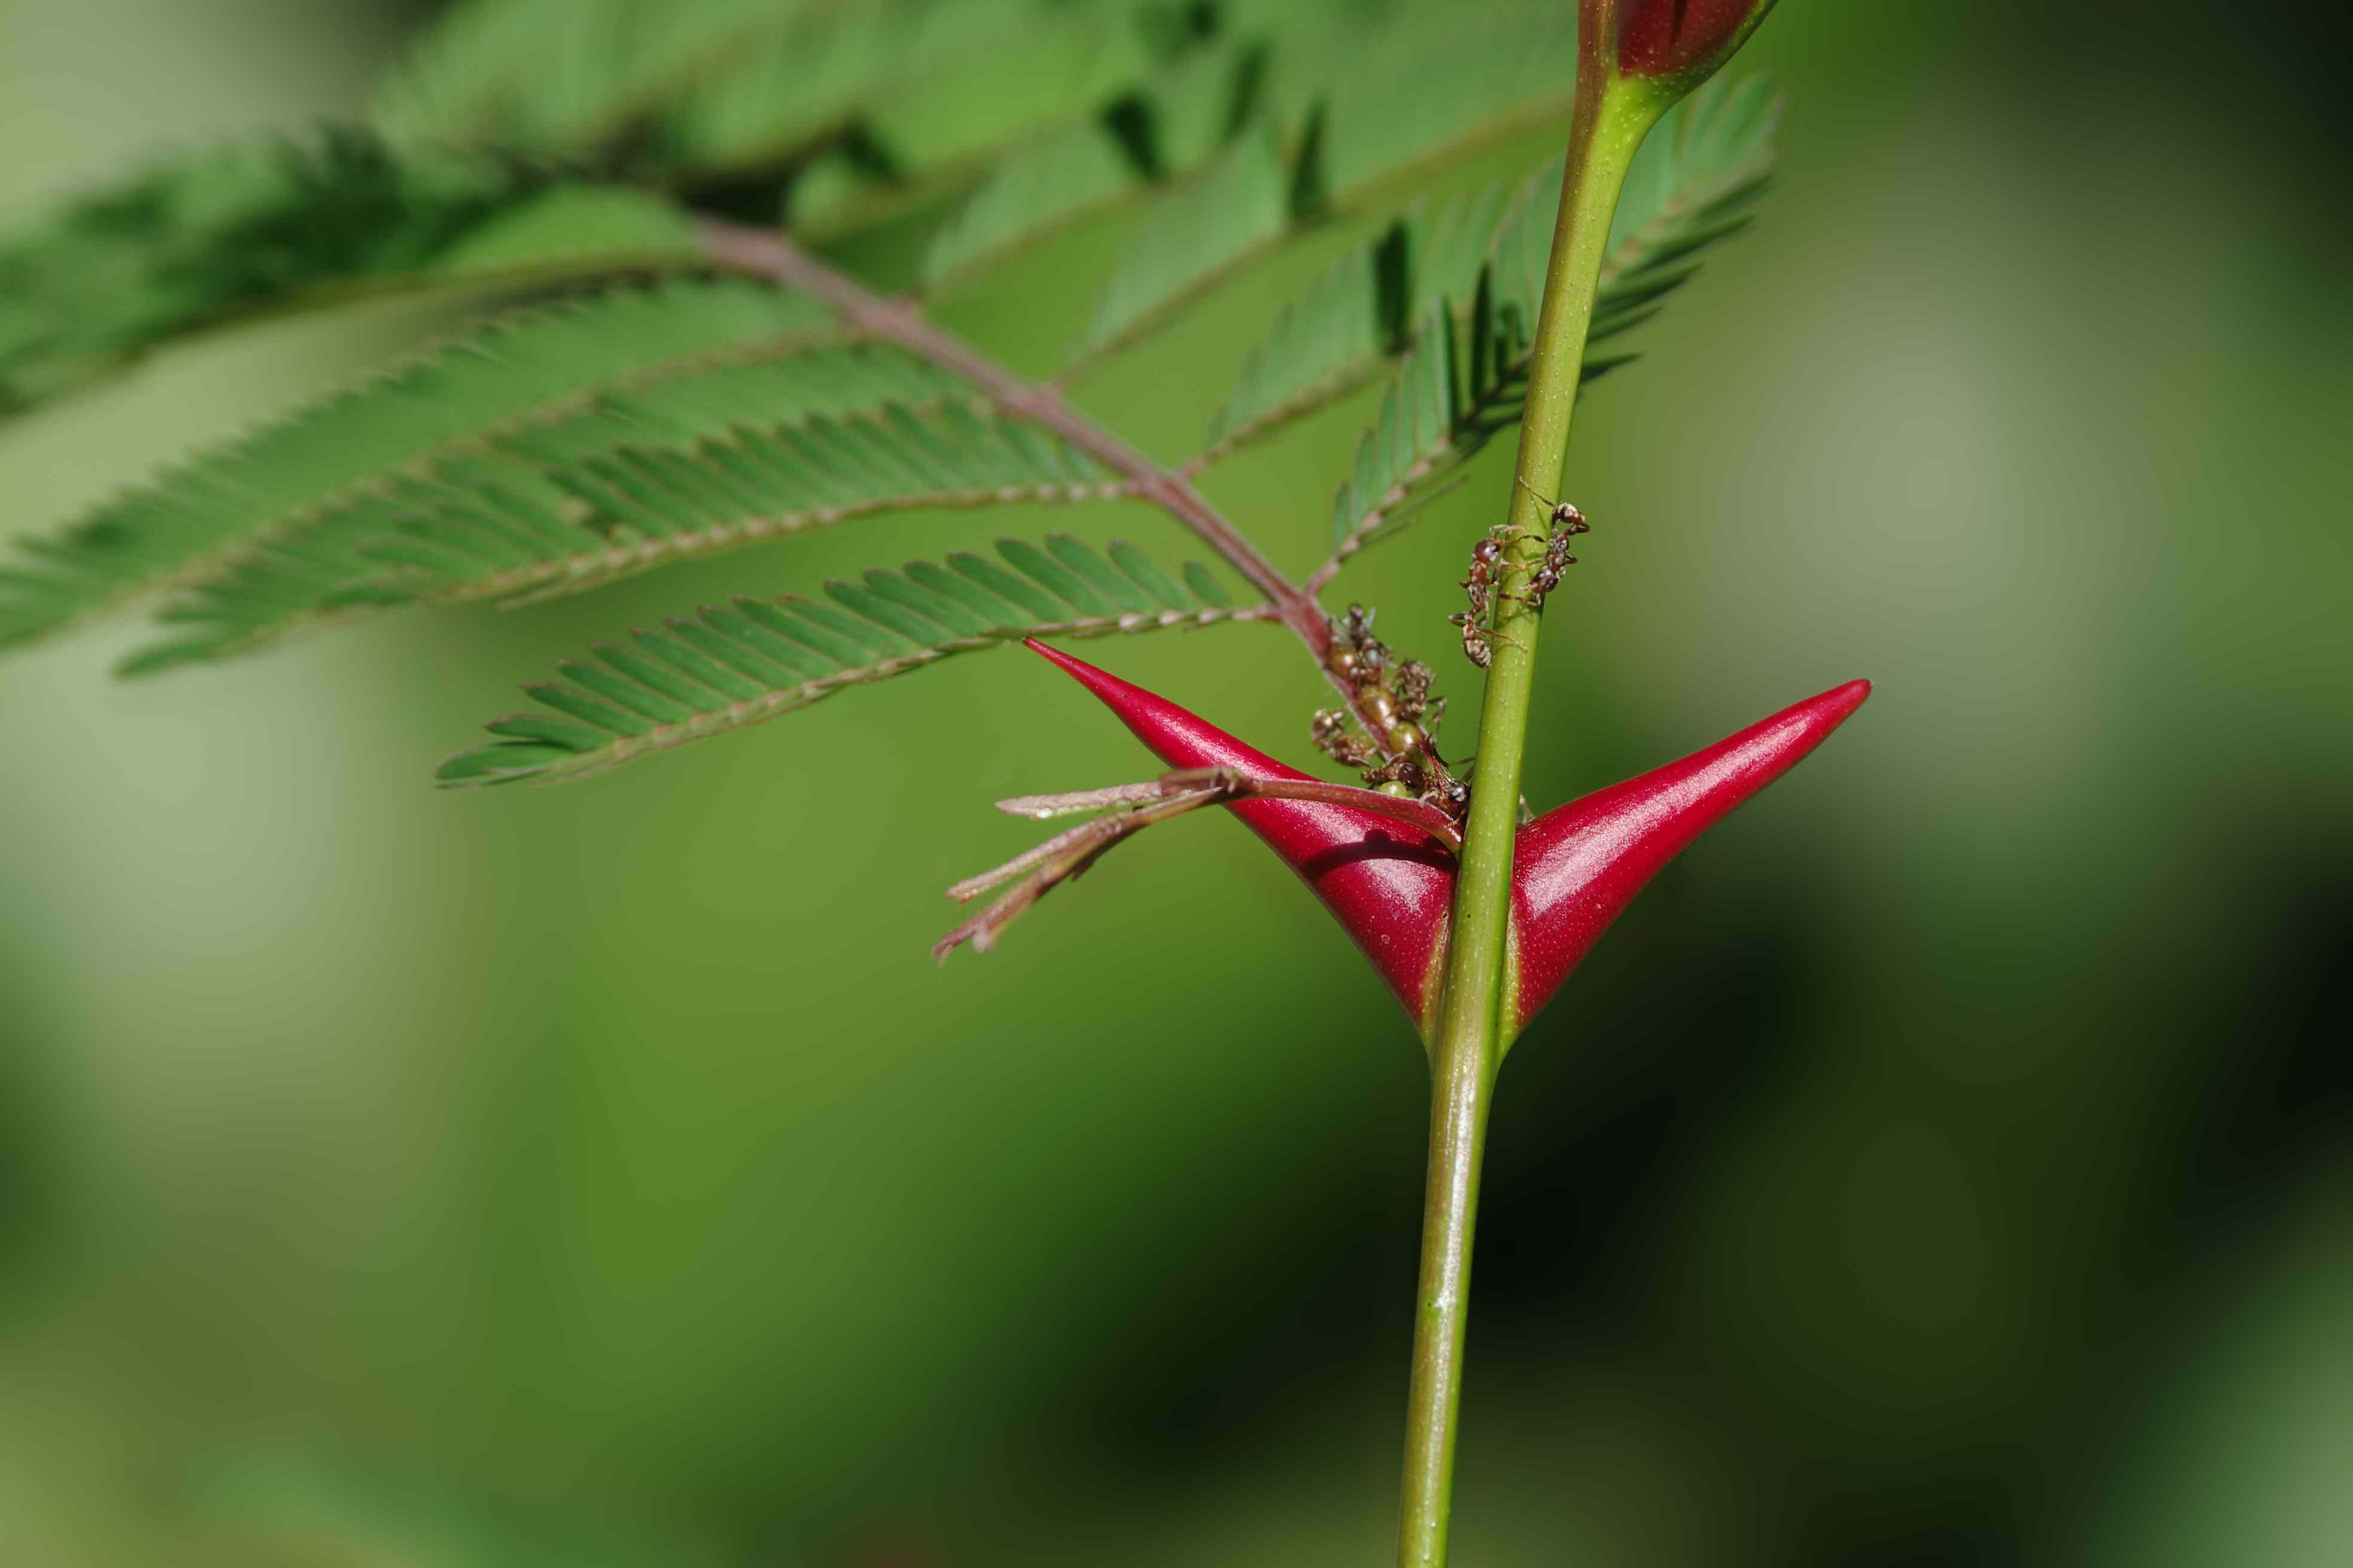 The thorns of the acacia tree not only look unpleasant on the outside, but house unpleasant ants on the inside.